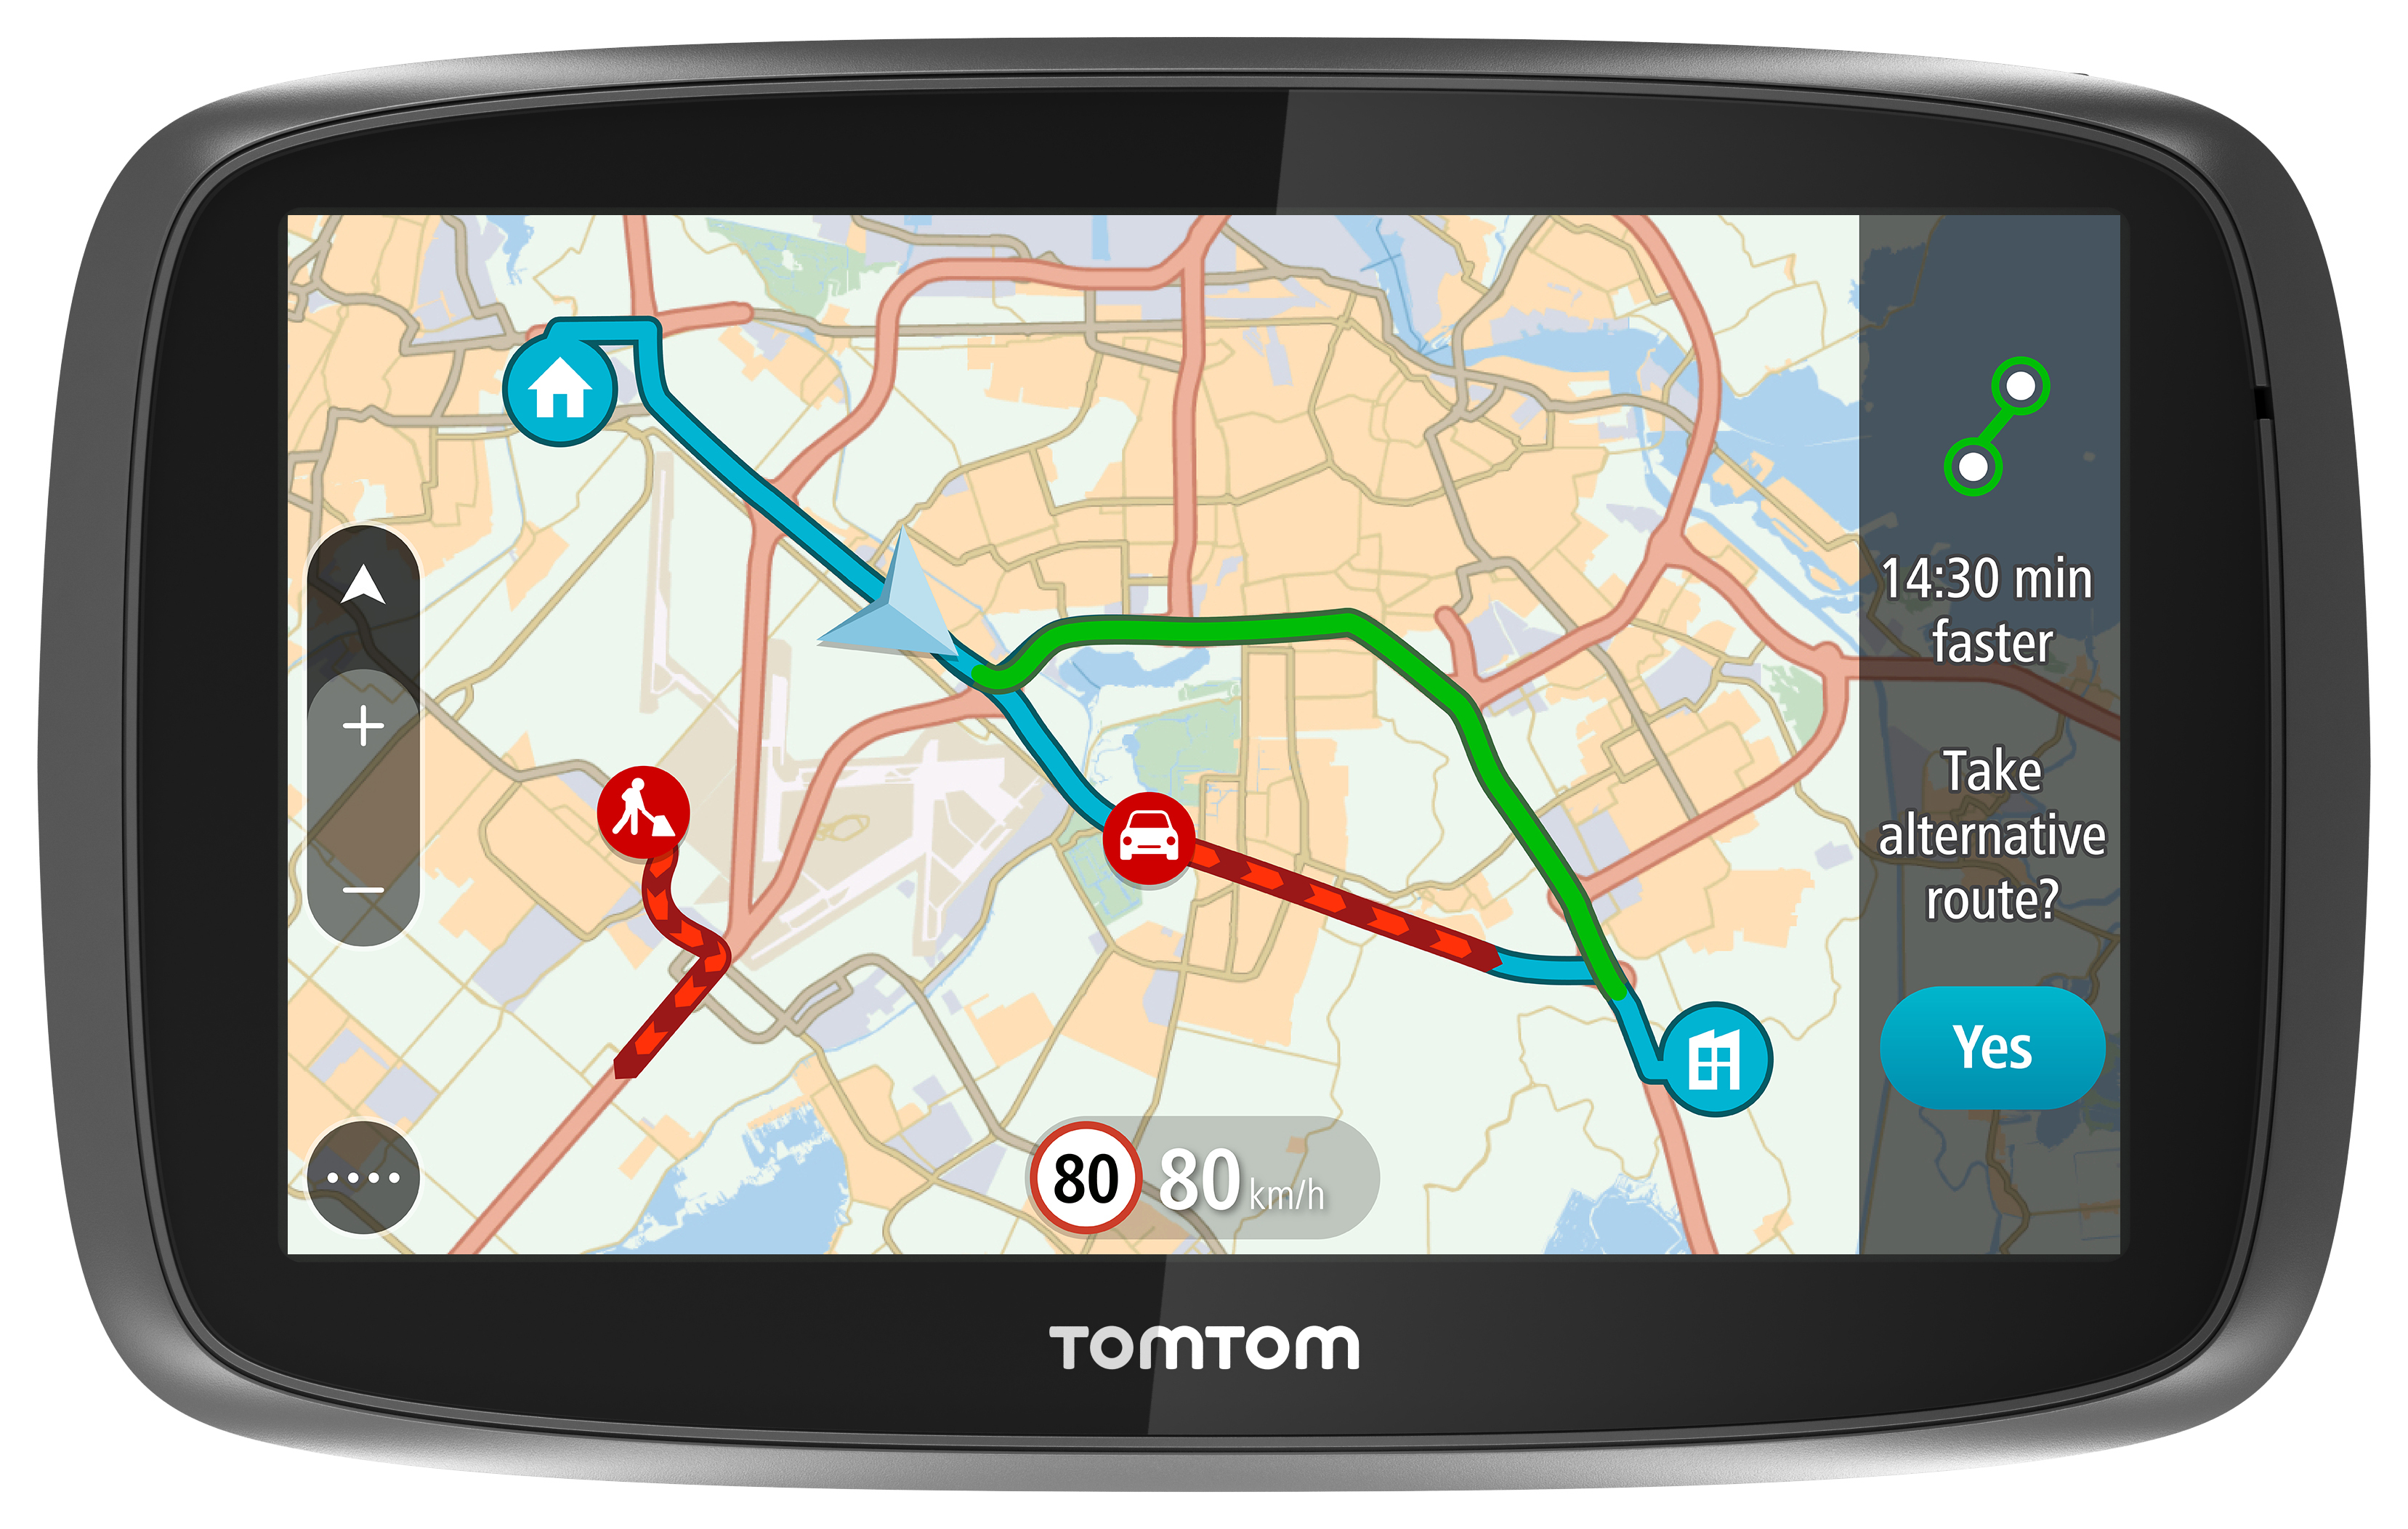 Tomtom launches new go navigation devices with lifetime world maps global pr manager gregrrisontomtom or north america press office karen ck drake communications director karendraketomtom gumiabroncs Gallery